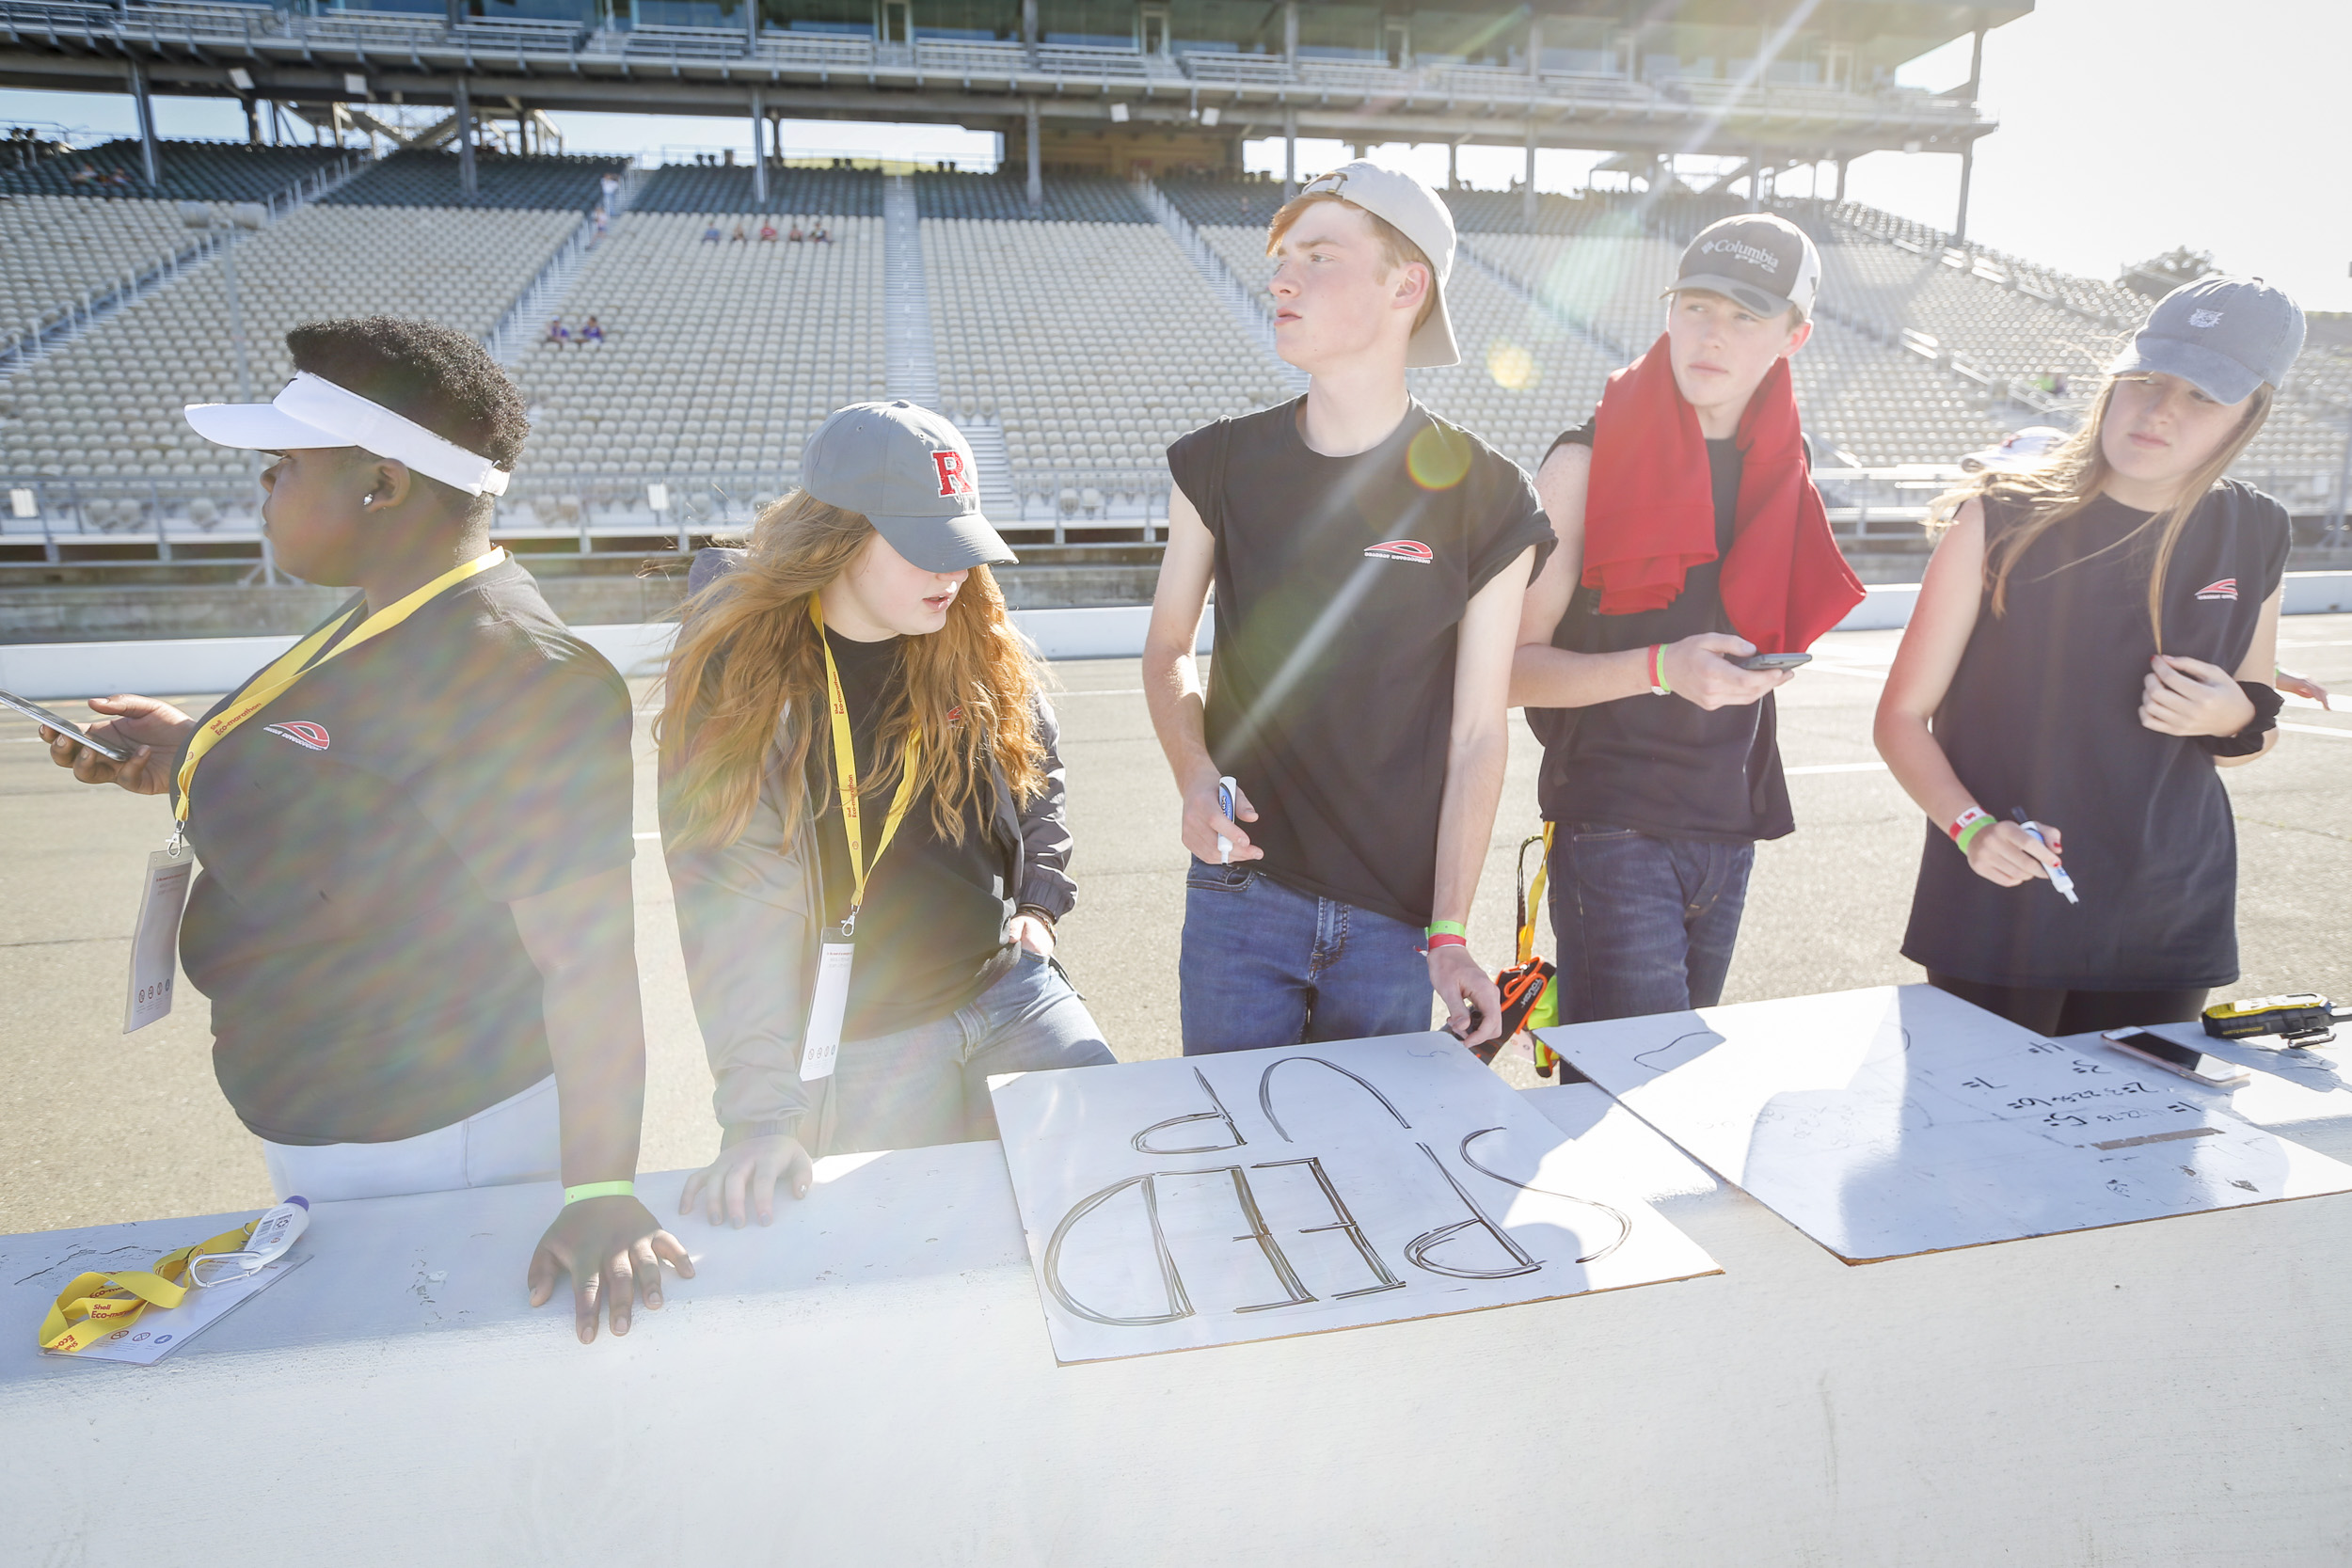 Team members prepare signage to signal their driver during day three of Shell Make the Future at Sonoma Raceway, Saturday, April 21, 2018 in Sonoma, Calif.